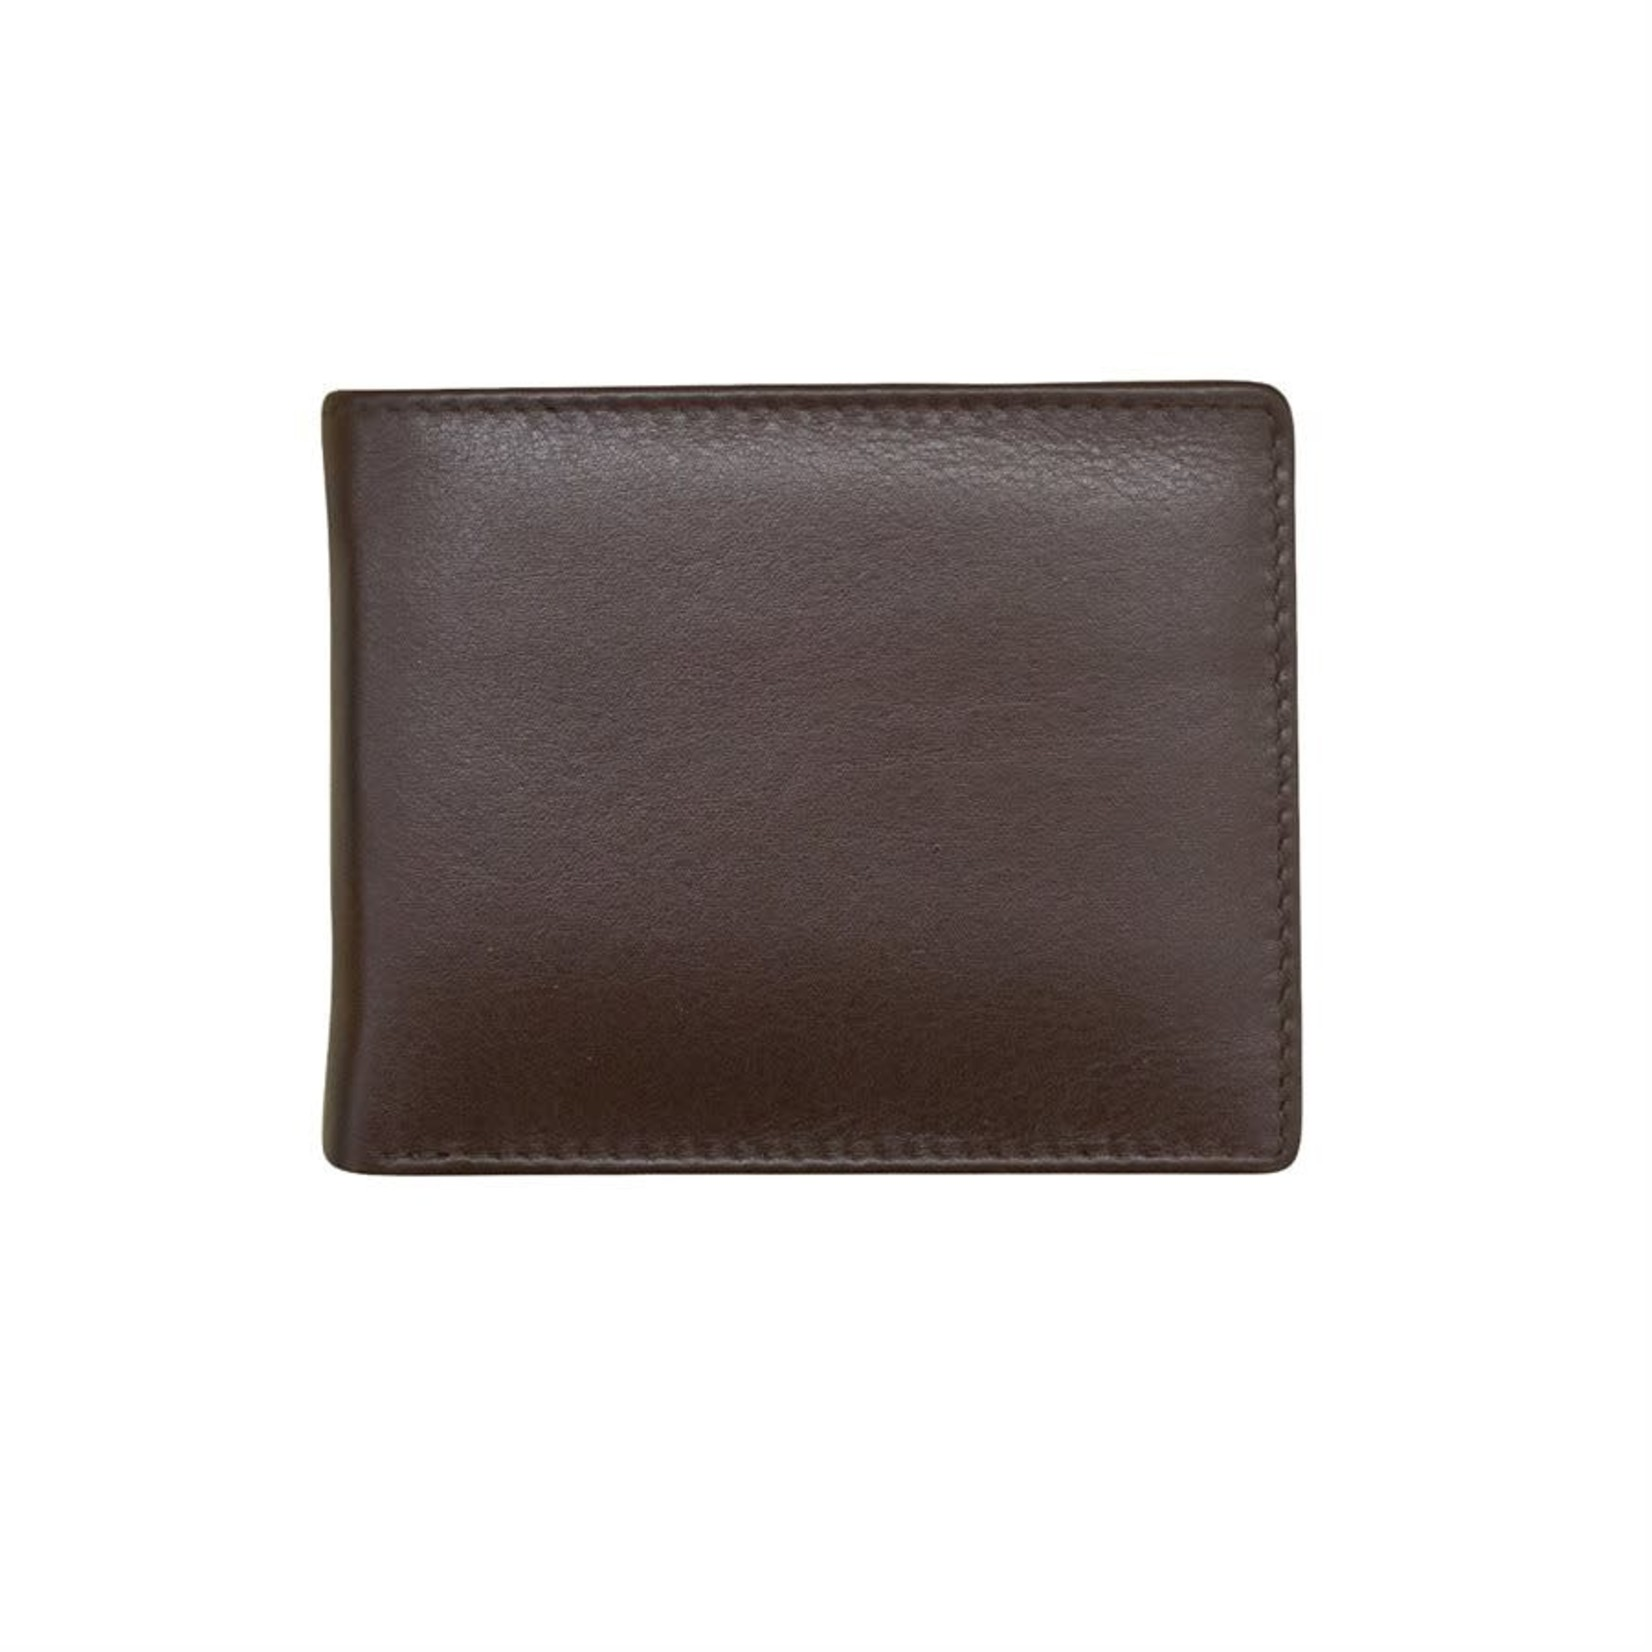 Leather Handbags and Accessories 7751 Brown - RFID BiFold Wallet